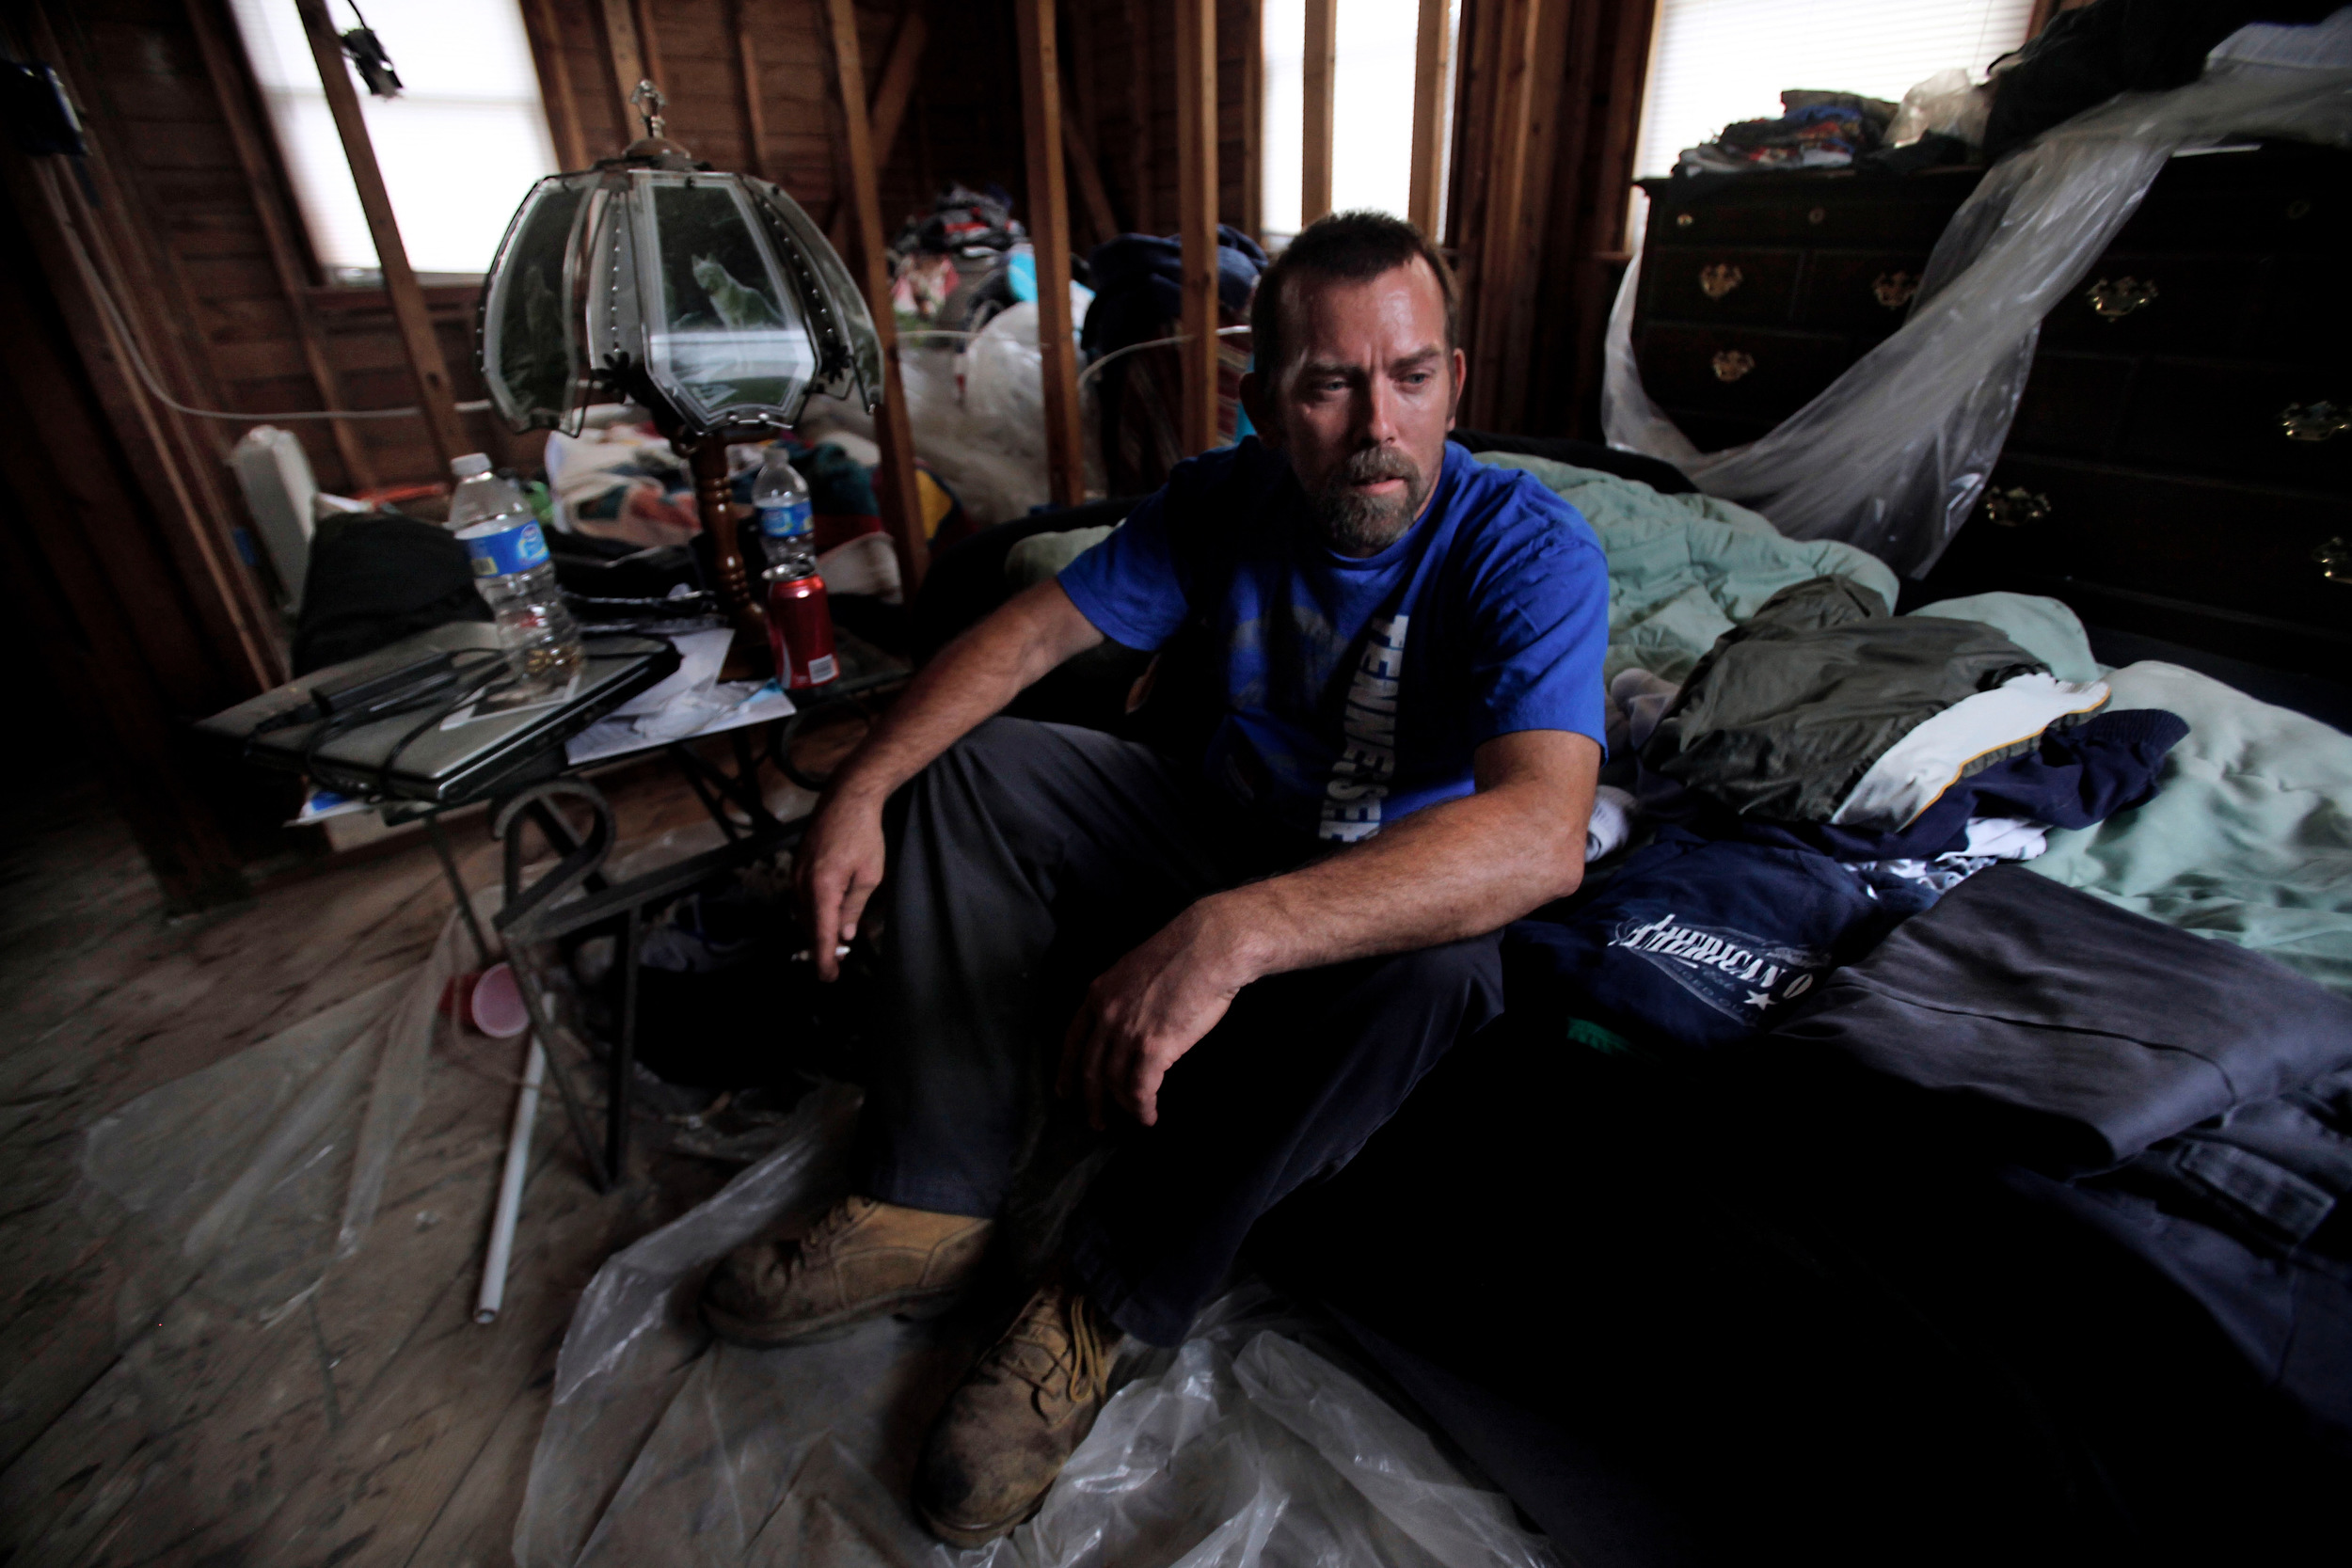 "Gregory Proctor has been living in the gutted remains of his house on an air mattresses six months after the flood in Nashville, Tenn. Proctor said he has been struggling to get his house rebuilt and has nowhere else to go. He received $1500.00 from FEMA and wonders why flood relief hasn't reached him. ""It's hard to come back from a long day of work to this,"" Proctor said."